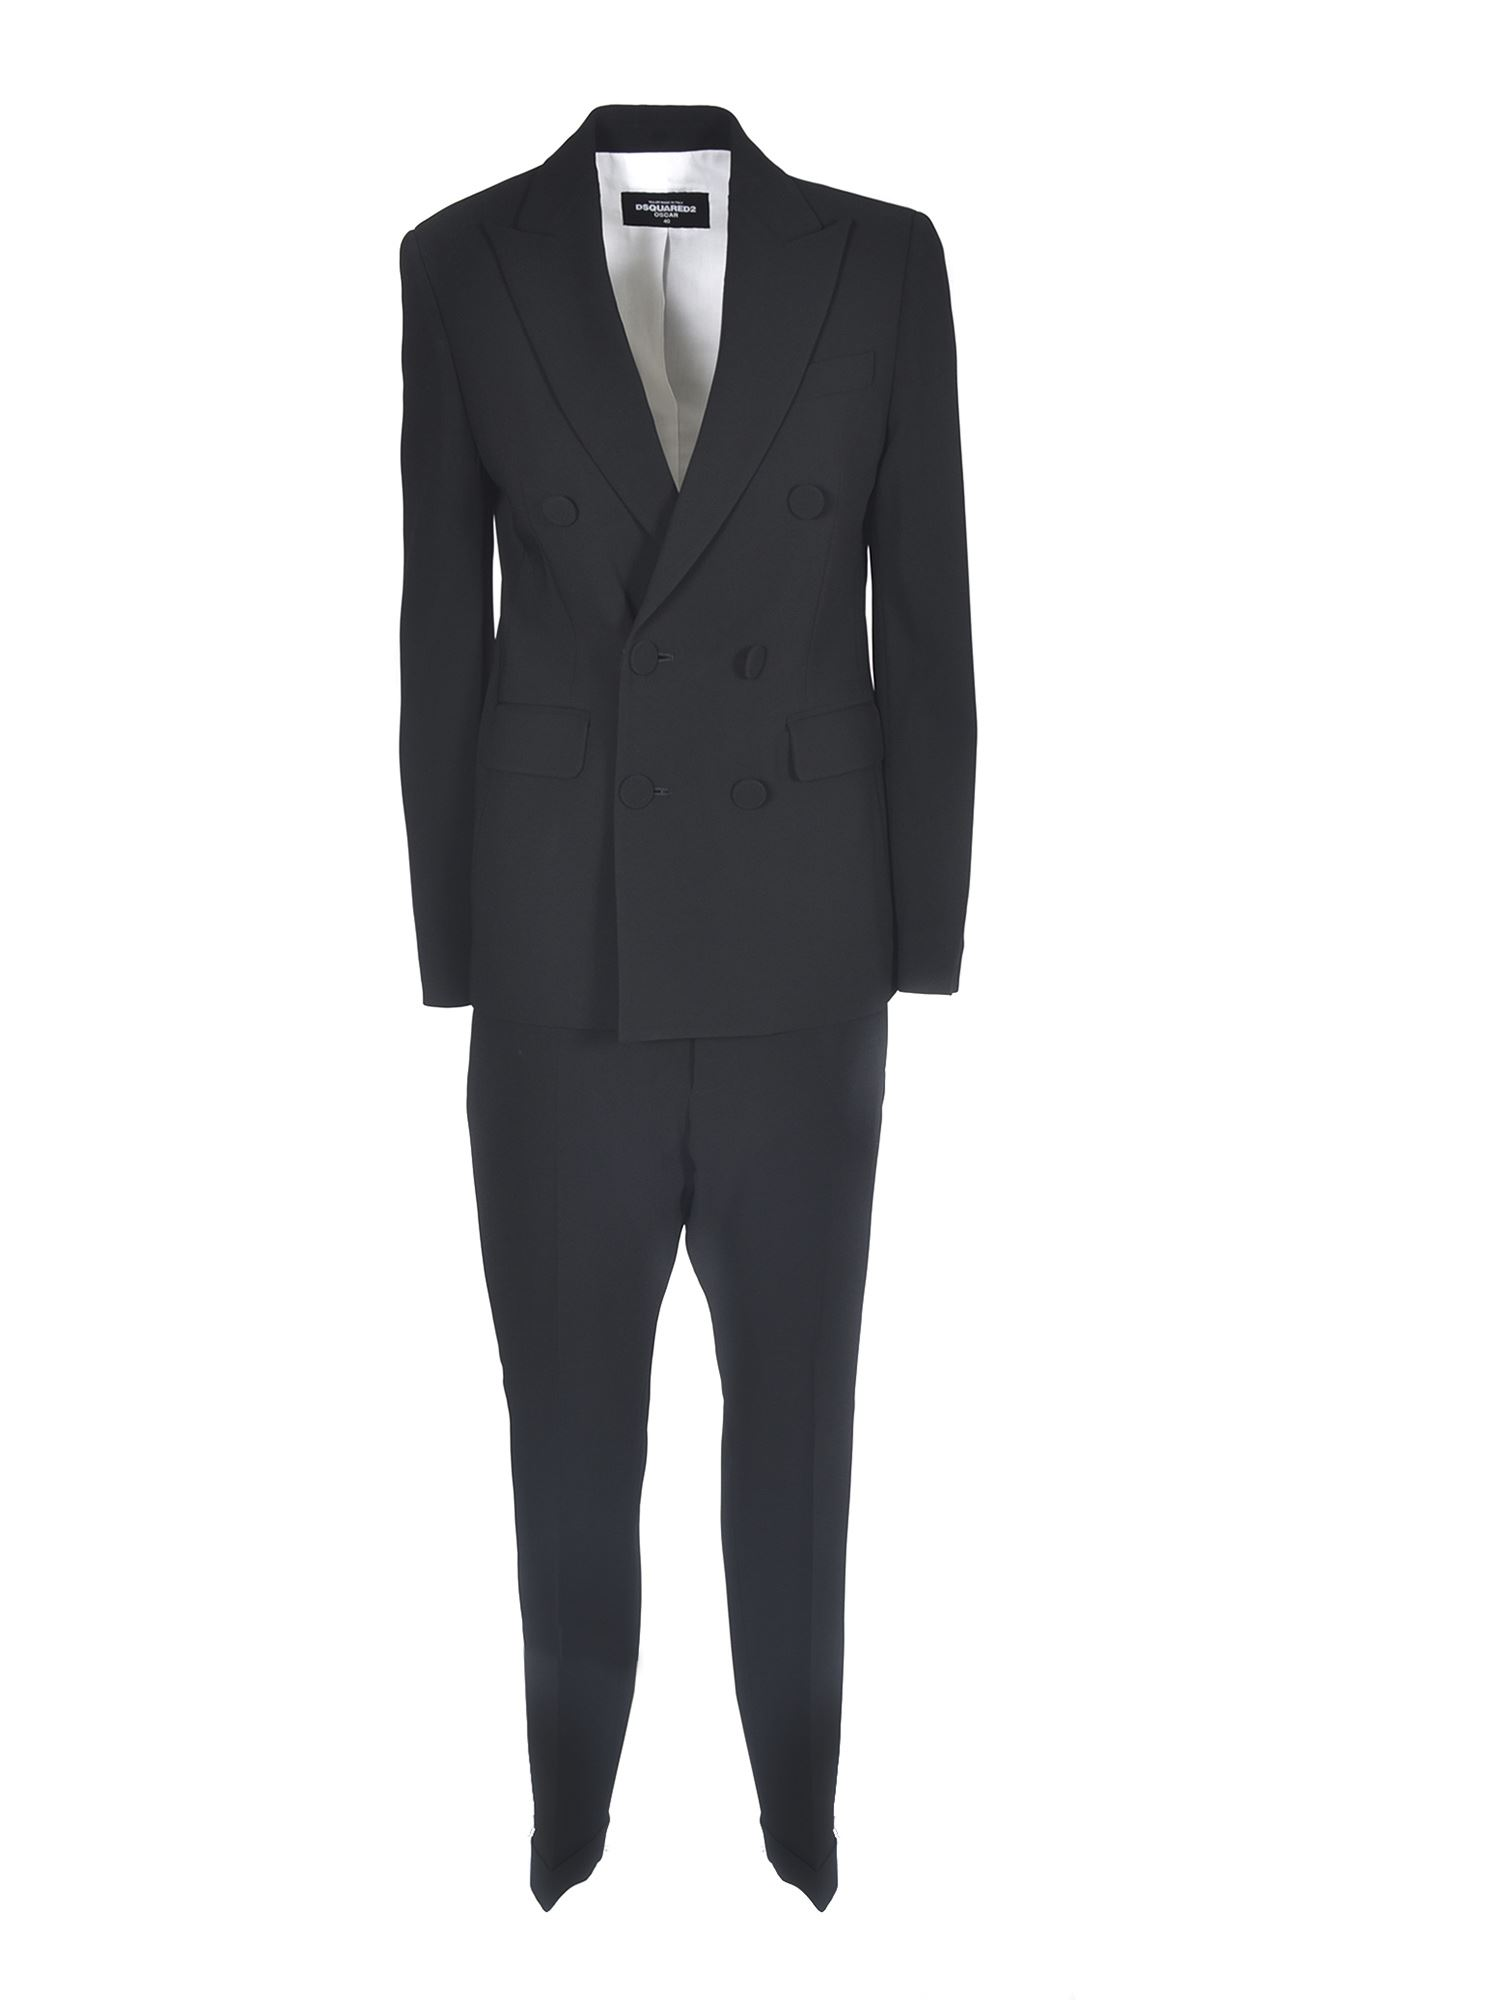 Dsquared2 DOUBLE-BREASTED SUIT IN BLACK